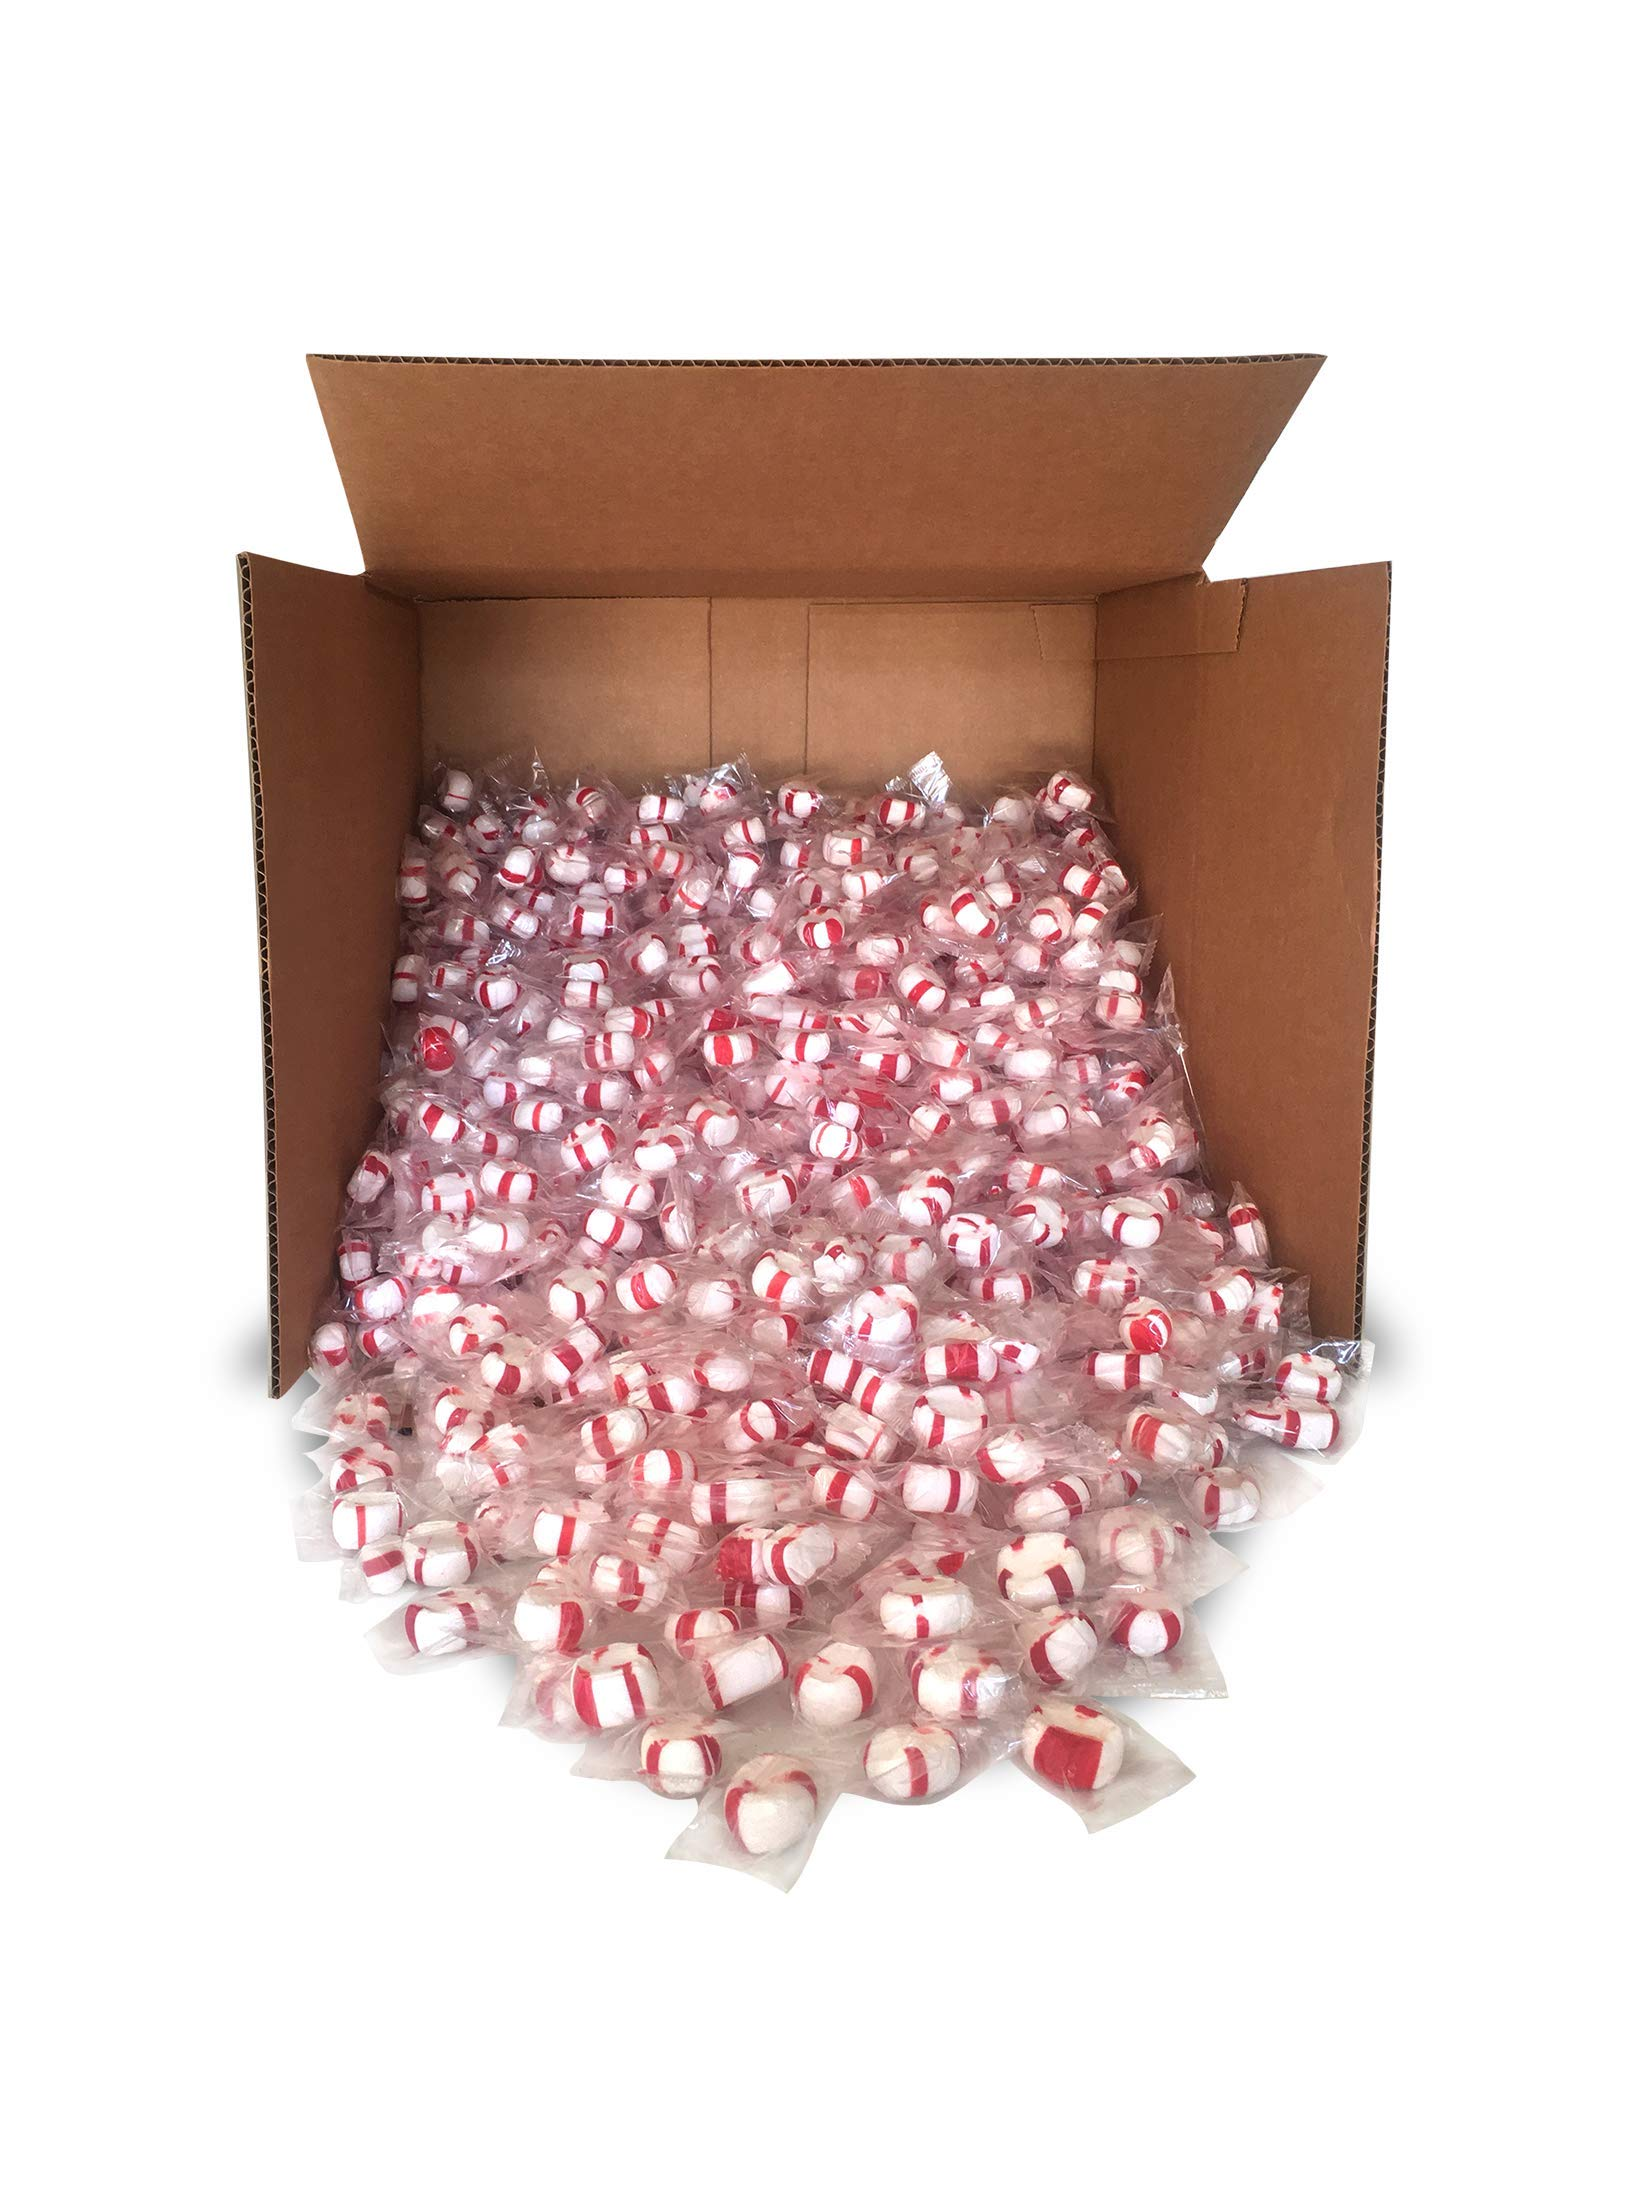 Red Bird Soft Peppermint Puff Candy 20 lb Bulk, individually wrapped, made with 100% cane sugar and natural peppermint oil